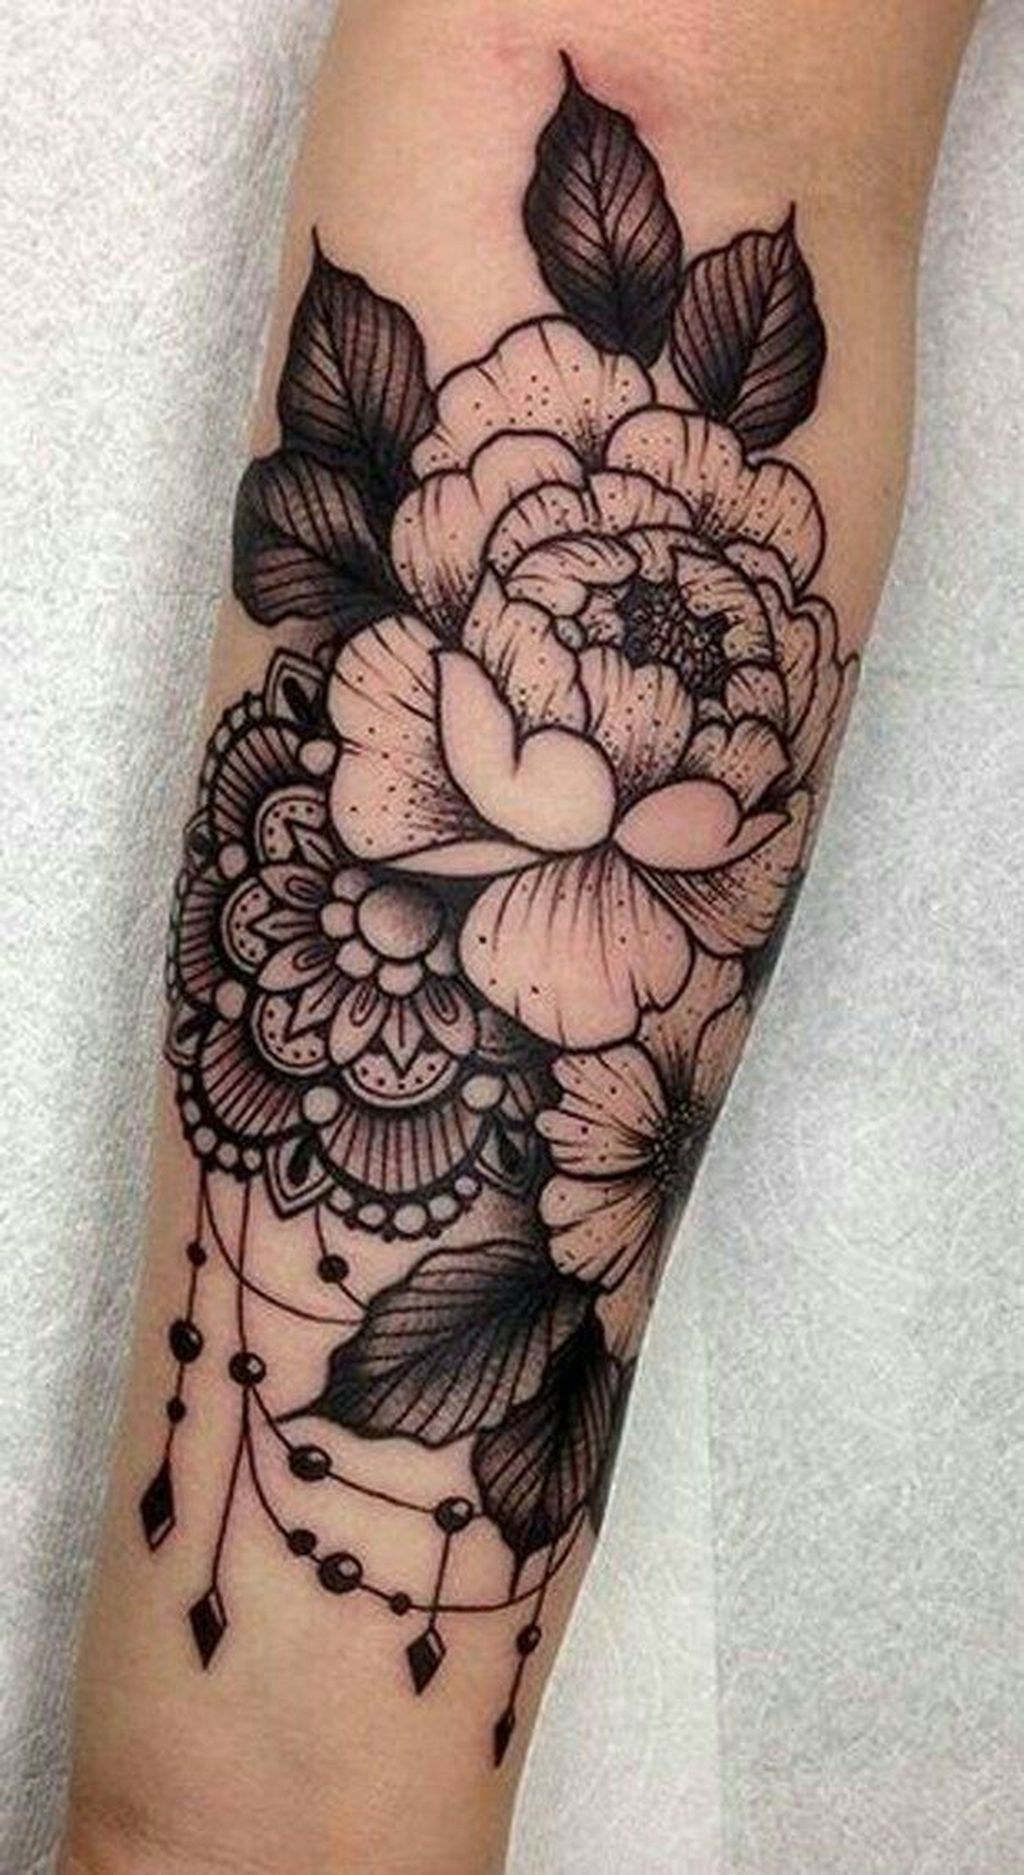 Cute Henna Lace Arm Tattoo Ideas You Should Try 10 Cool Tattoo For regarding measurements 1024 X 1875